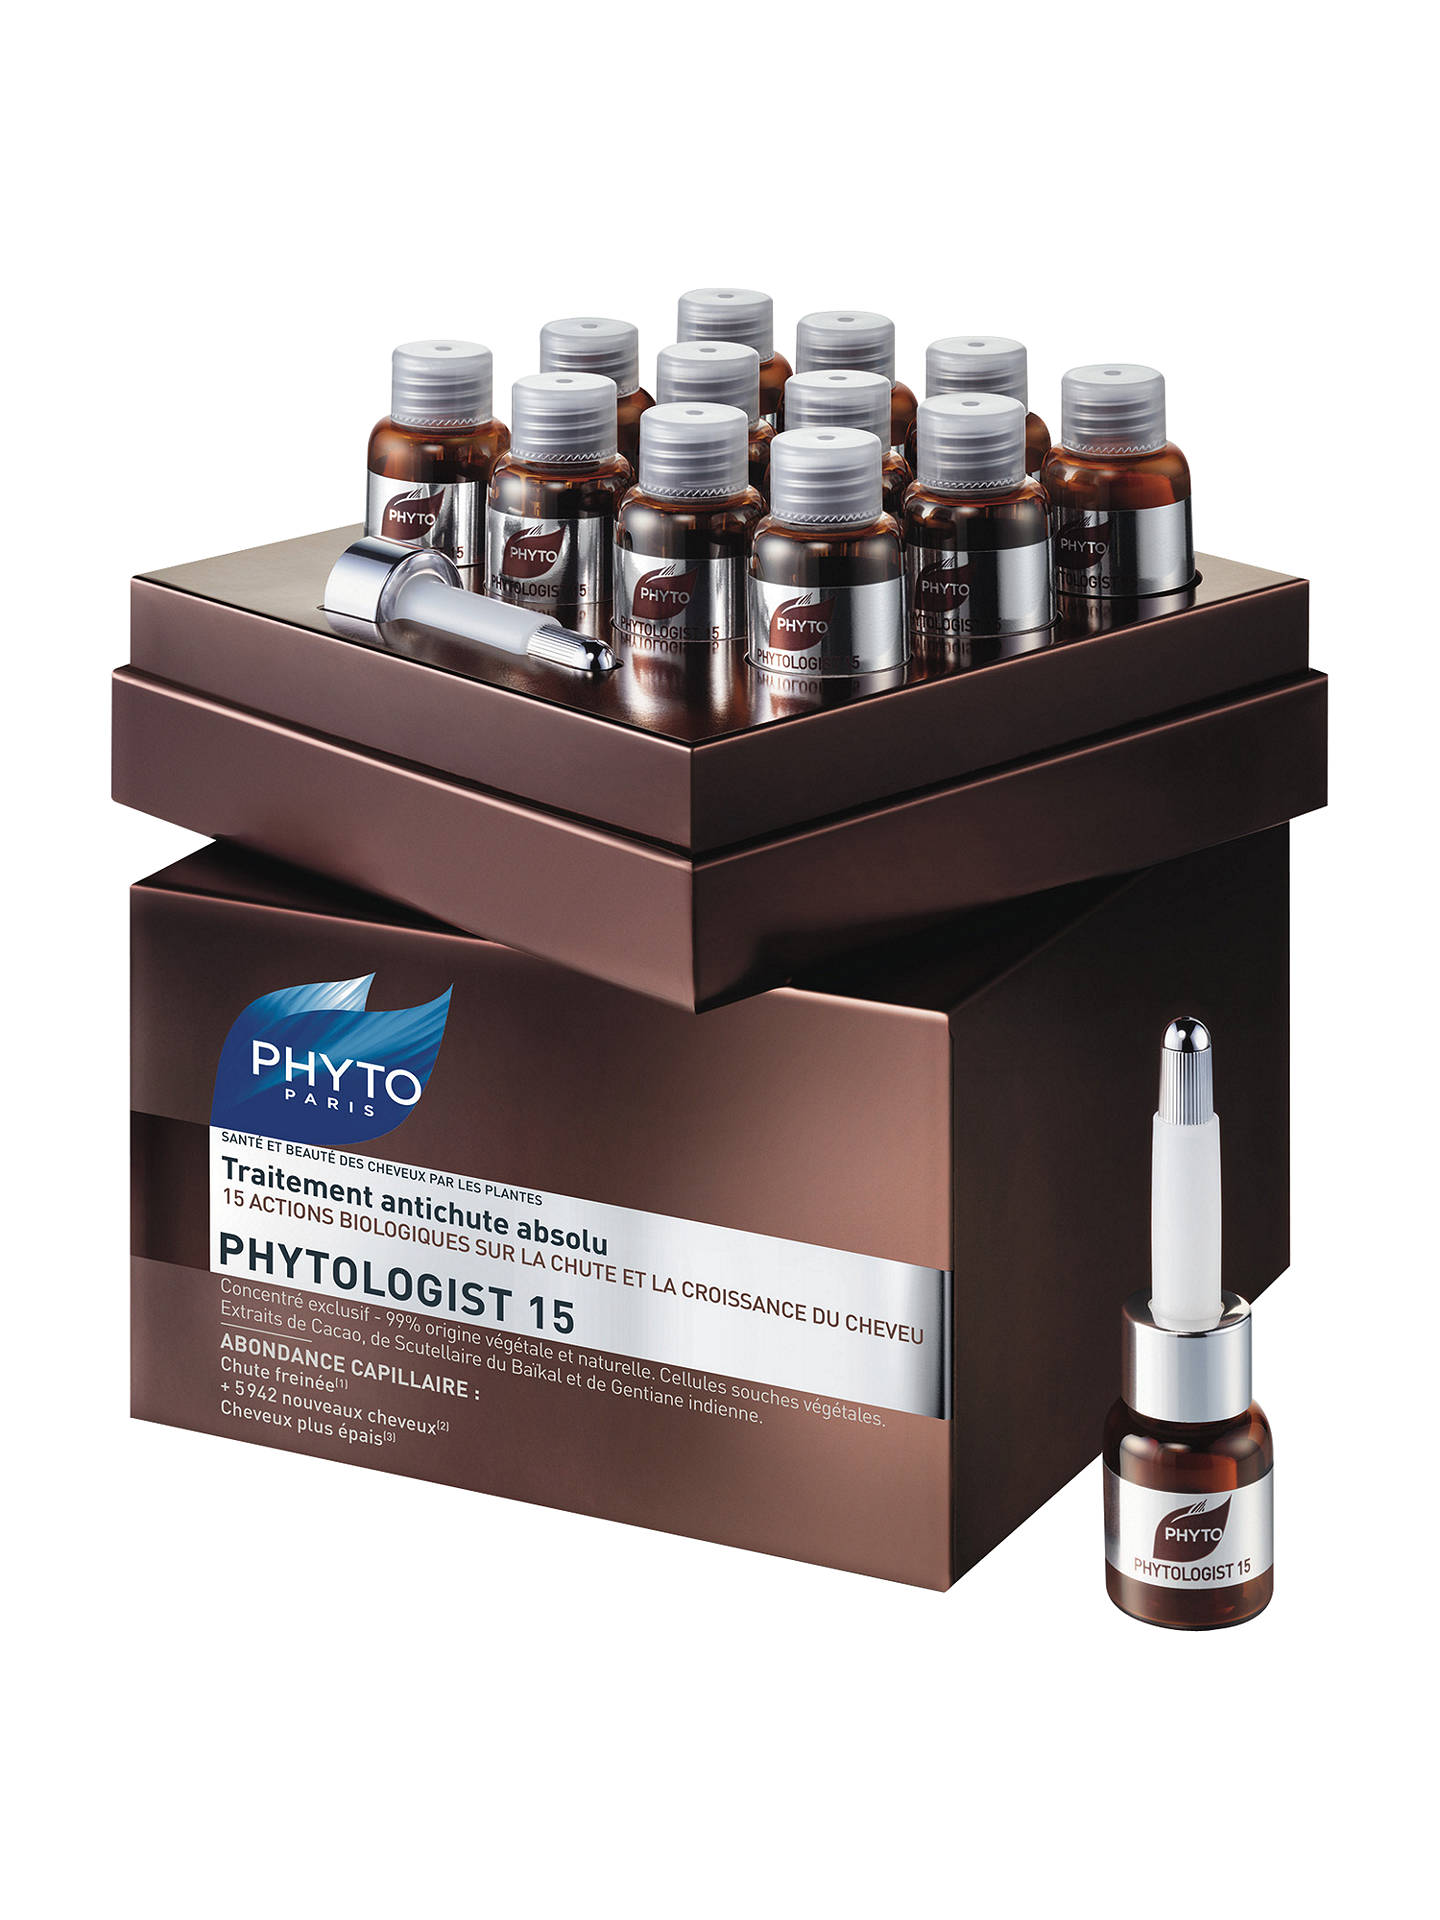 Buy Phyto Phytologist 15 Absolute Anti-Hair Thinning Treatment, 12 x 3.5ml Online at johnlewis.com